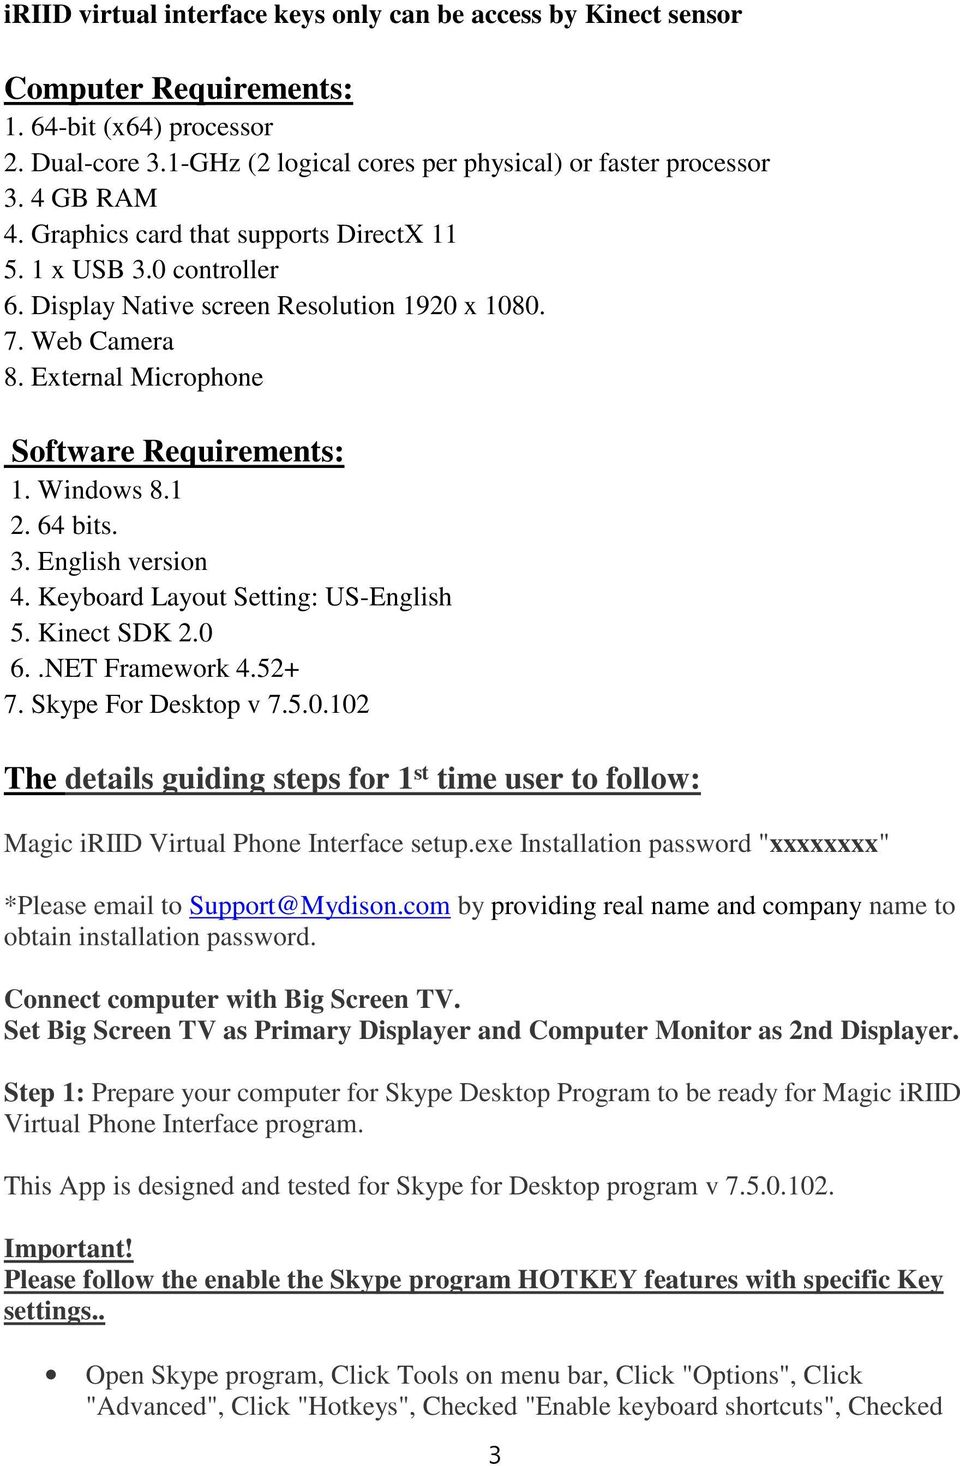 3. English version 4. Keyboard Layout Setting: US-English 5. Kinect SDK 2.0 6..NET Framework 4.52+ 7. Skype For Desktop v 7.5.0.102 The details guiding steps for 1 st time user to follow: Magic iriid Virtual Phone Interface setup.